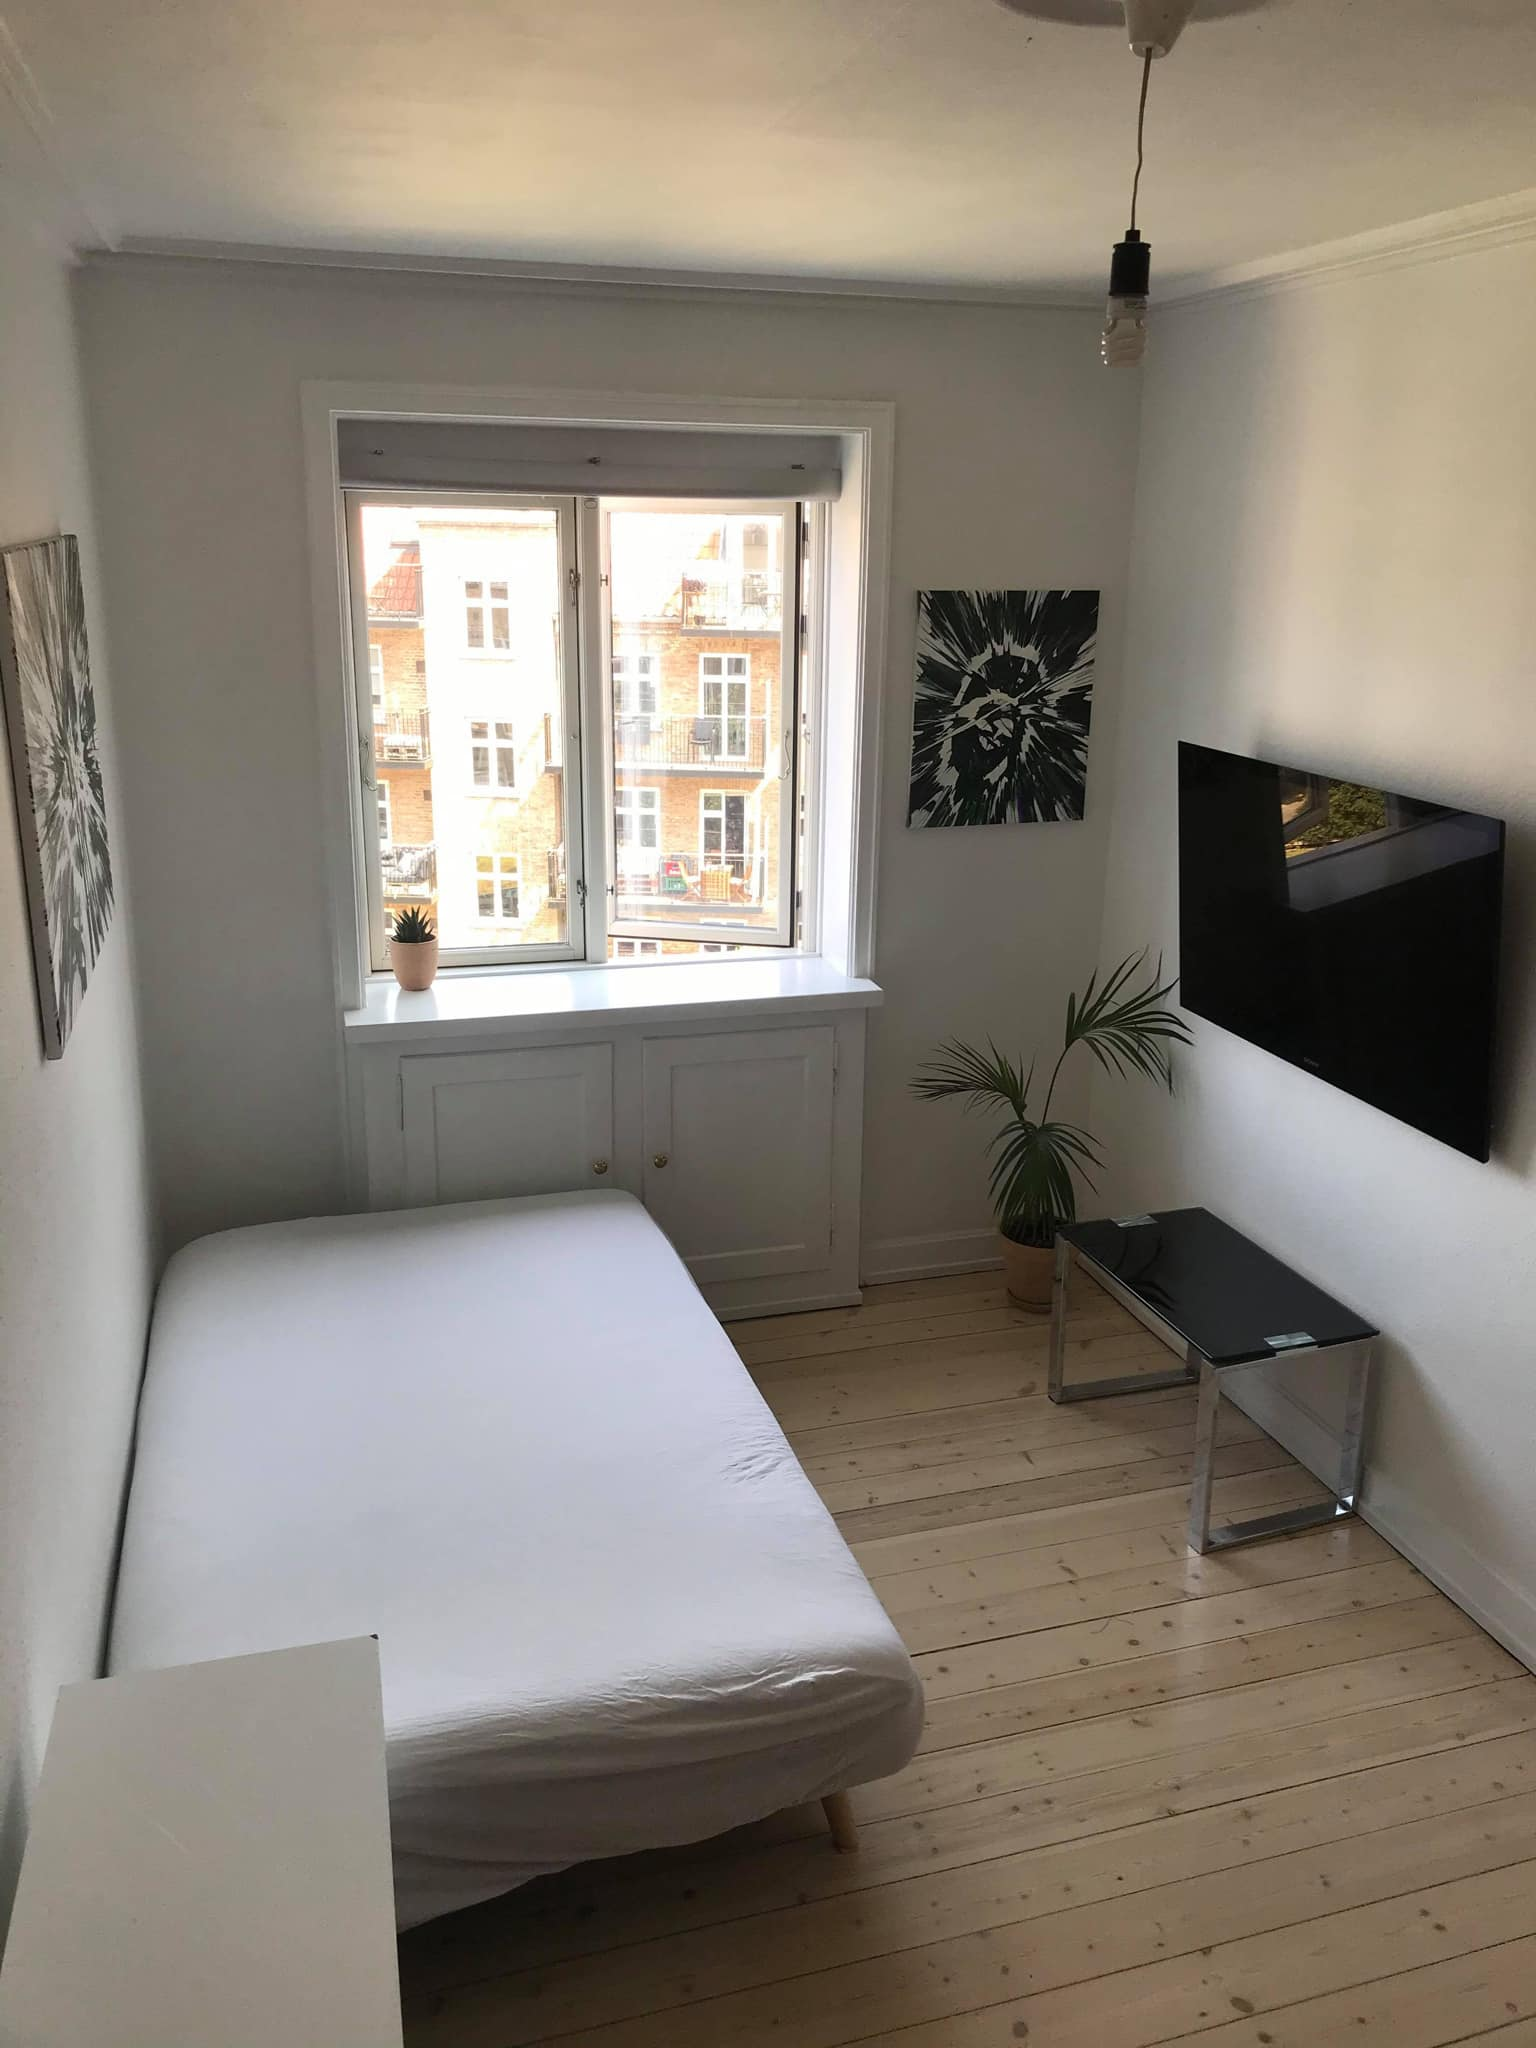 ROOMMATE is wanted for a room in Østerbro.